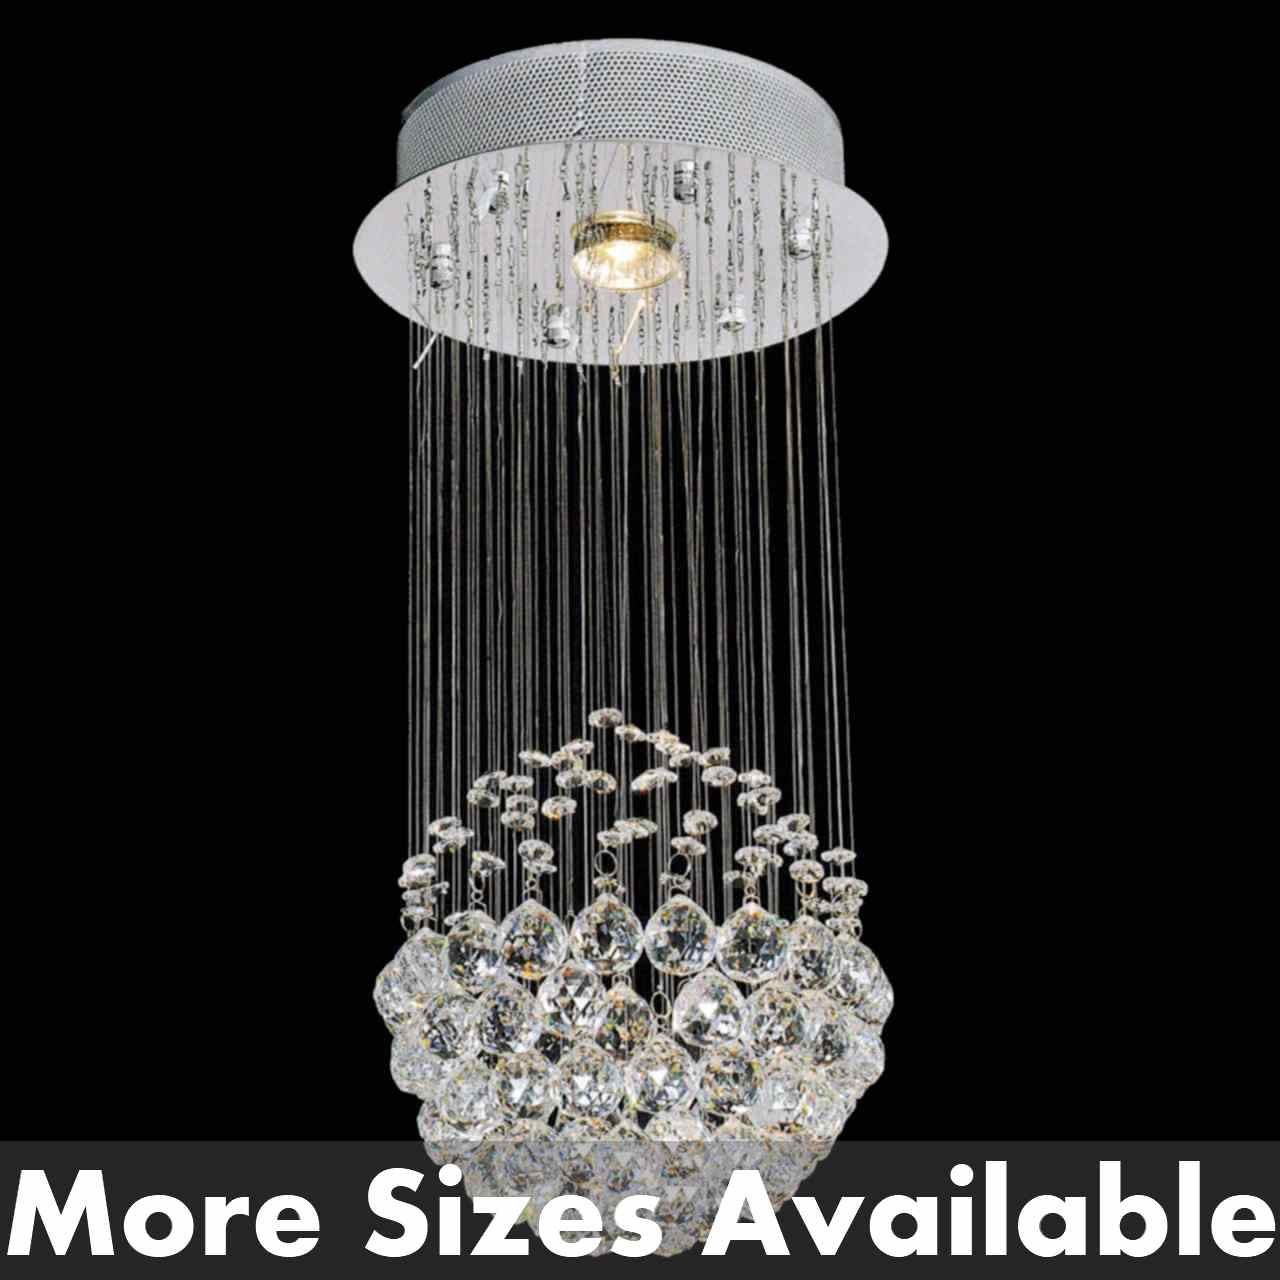 Picture of Sphere Modern Crystal Chandelier Small Mirror Stainless Steel Base 1 Light & Brizzo Lighting Stores. Sphere Modern Crystal Chandelier Small ... azcodes.com